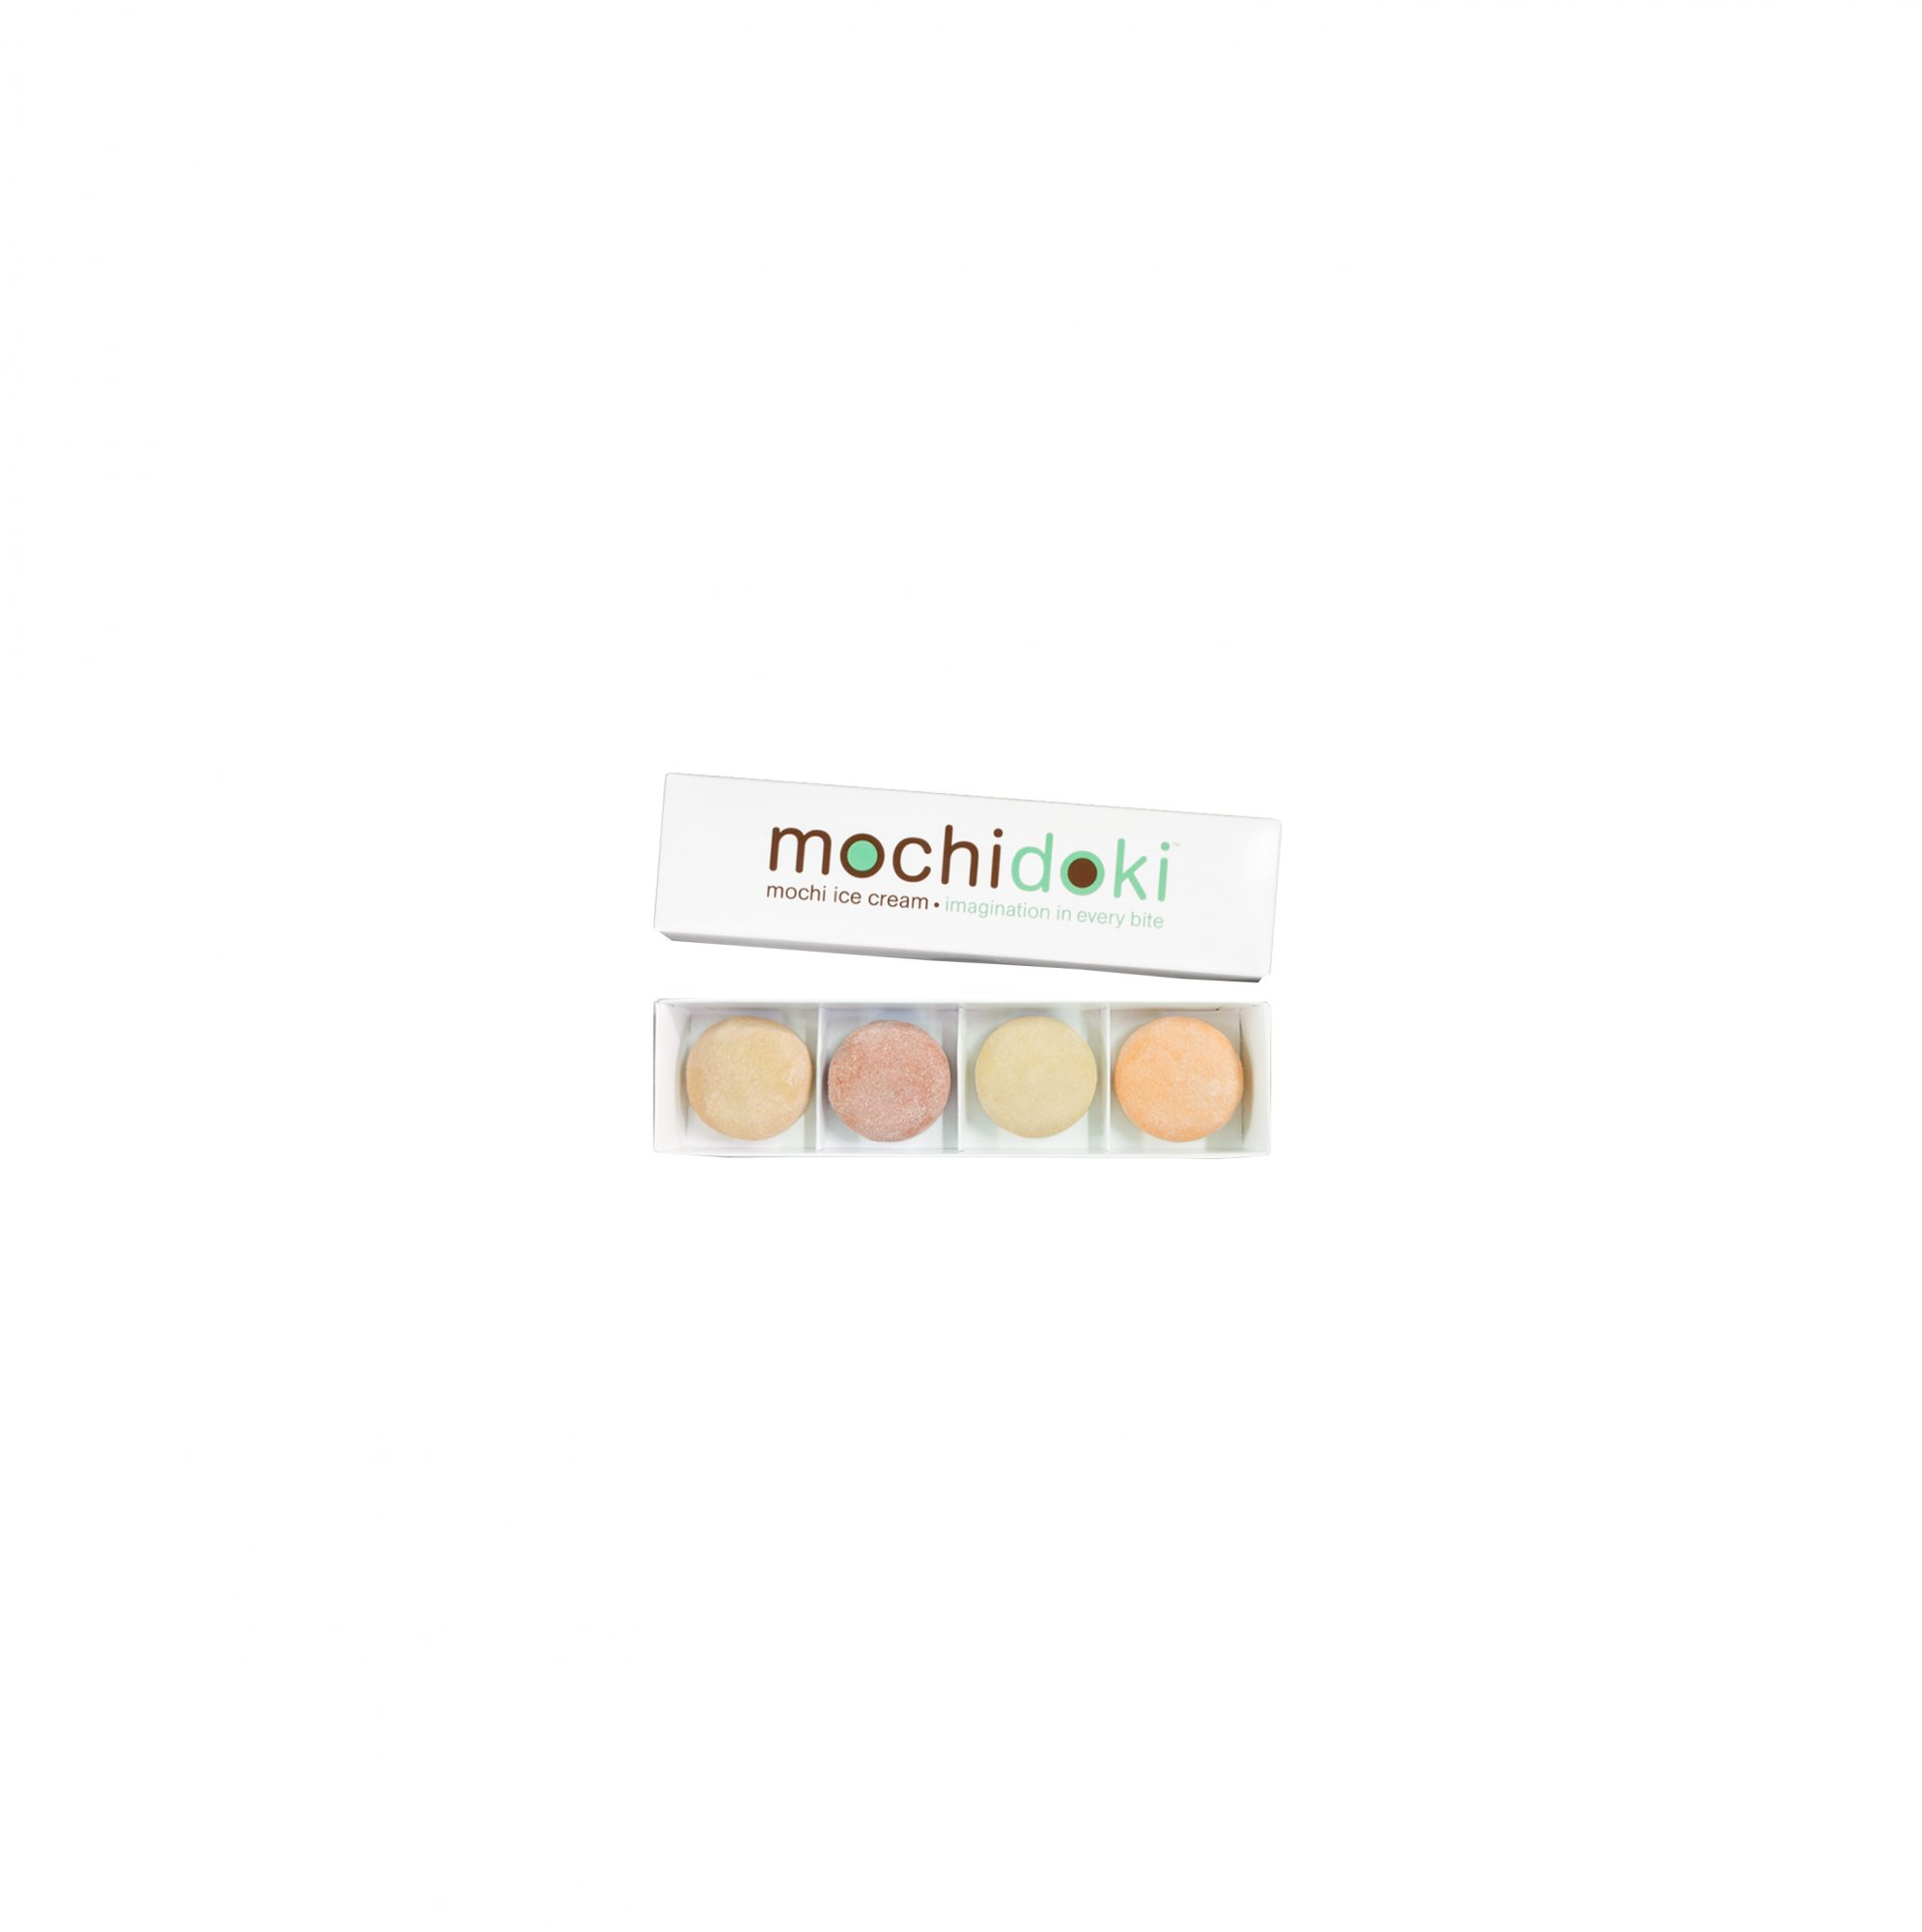 Mochidoki Holiday-Themed Mochi Ice Cream